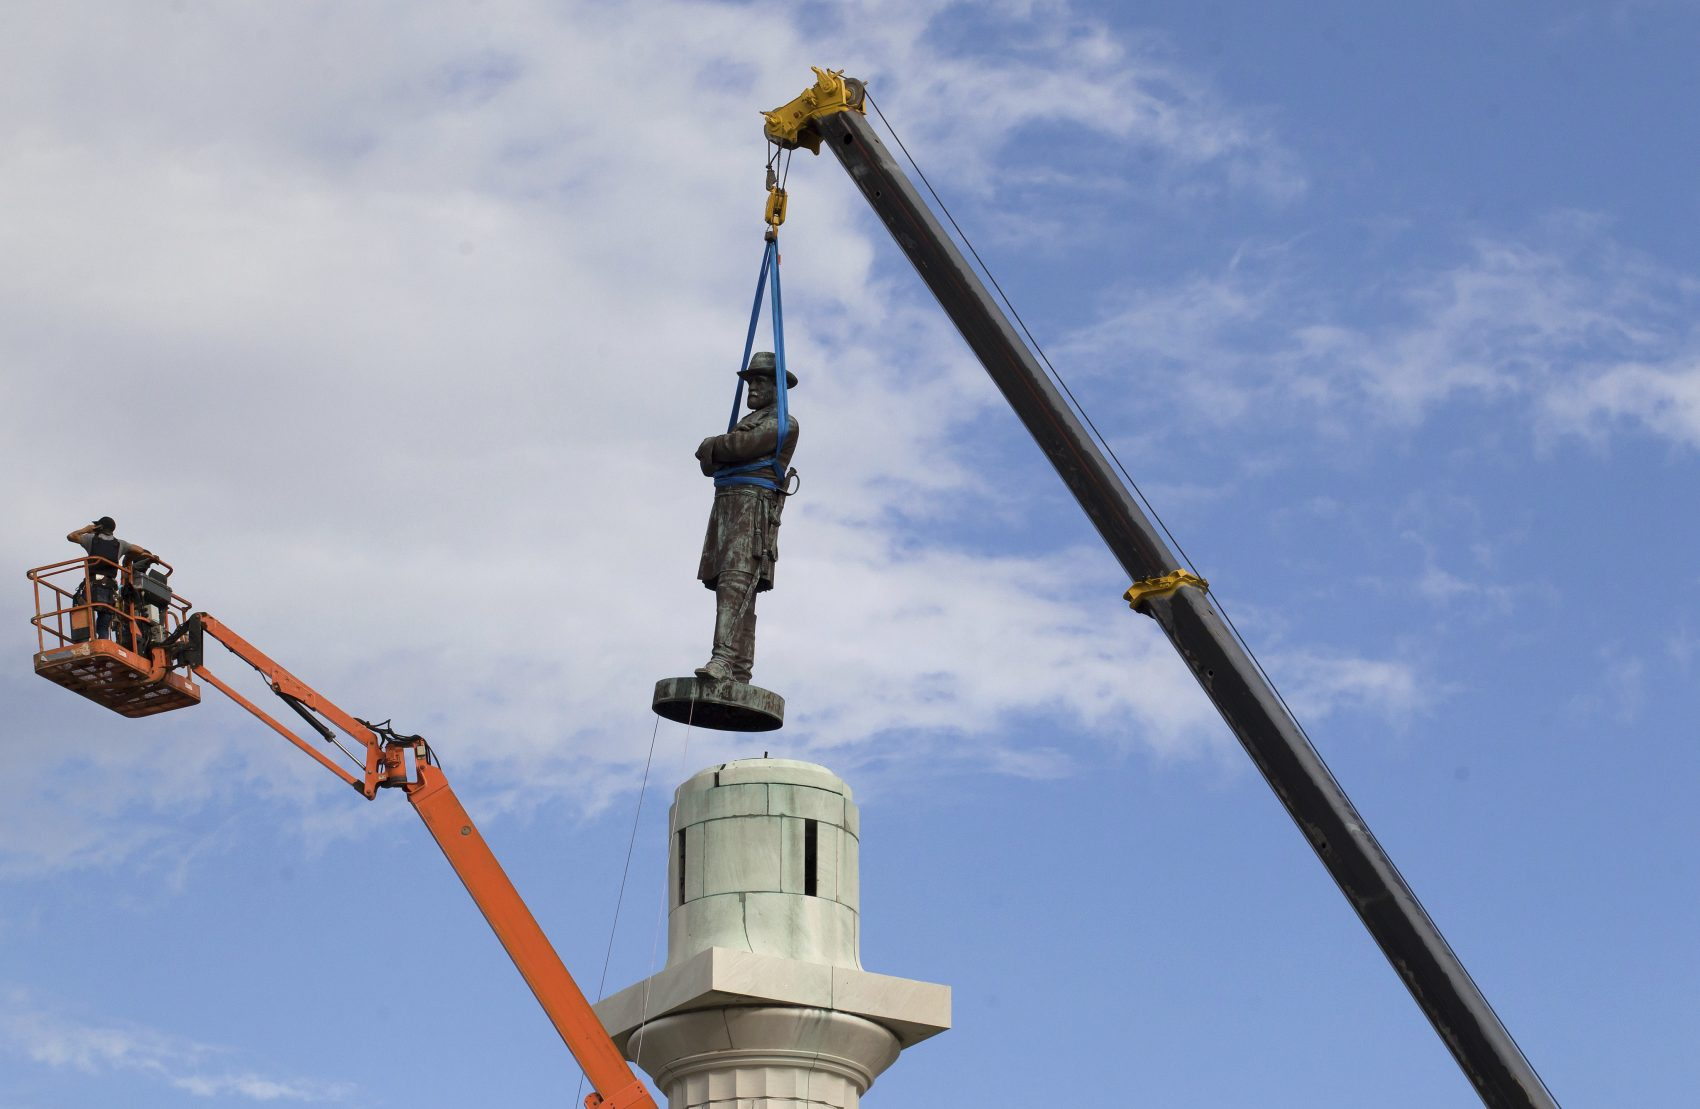 Good for news for New Orleans. But how should we deal with such sinful remainders of slavery's past in the celebrated precincts of Boston? asks Kevin C. Peterson. Pictured: A statue of Confederate General Robert E. Lee is removed from Lee Circle Friday, May 19, 2017, in New Orleans. (Scott Threlkeld/AP)